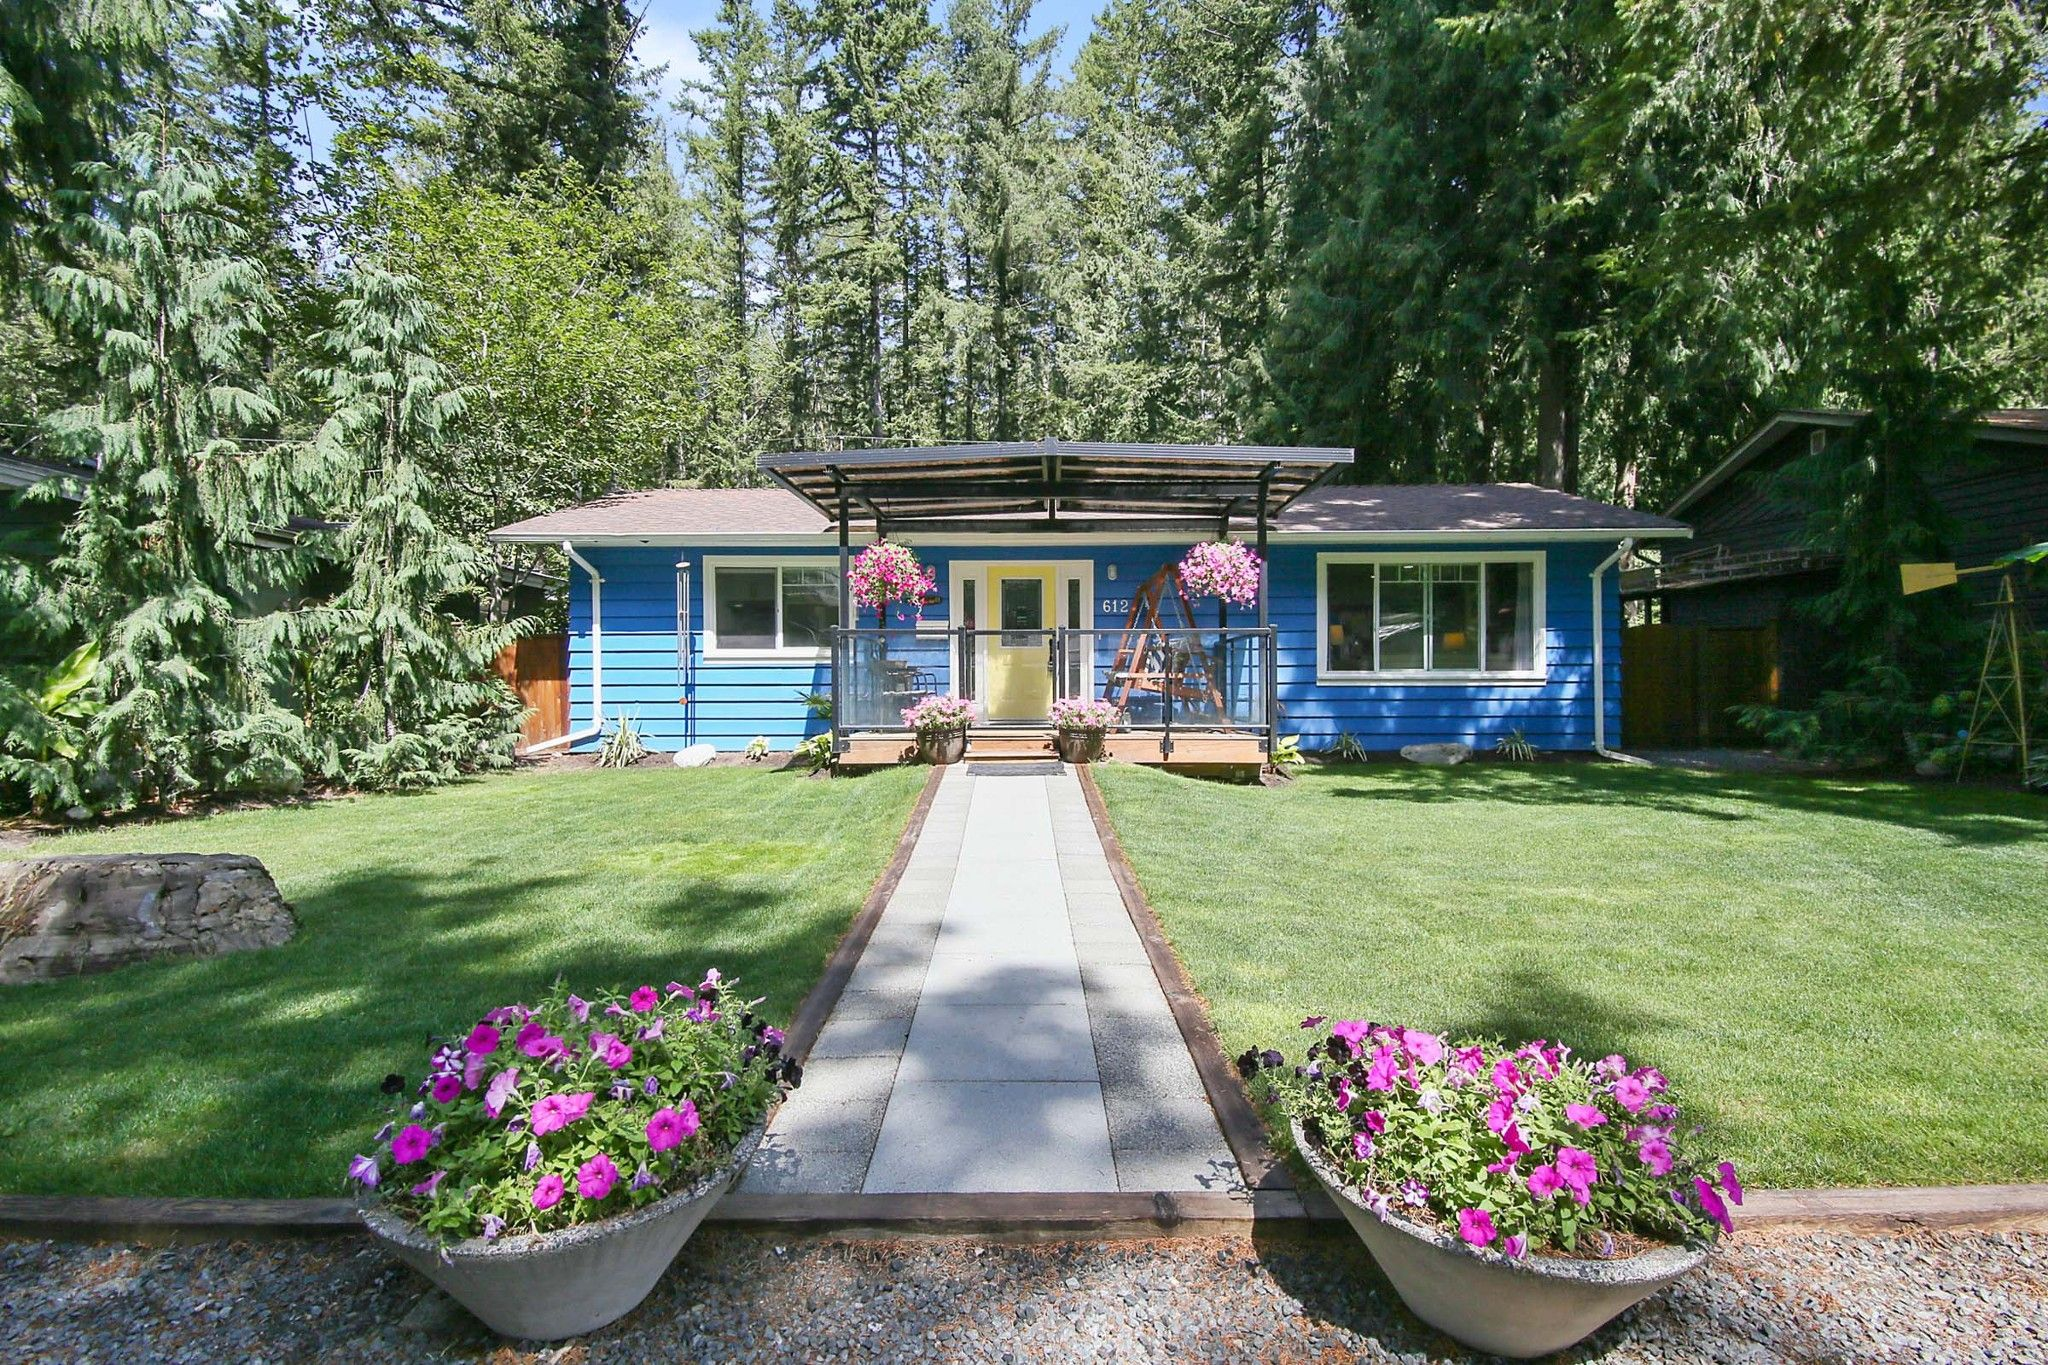 Main Photo: 612 MOUNTAIN VIEW Road in Chilliwack: Cultus Lake House for sale : MLS®# R2609015